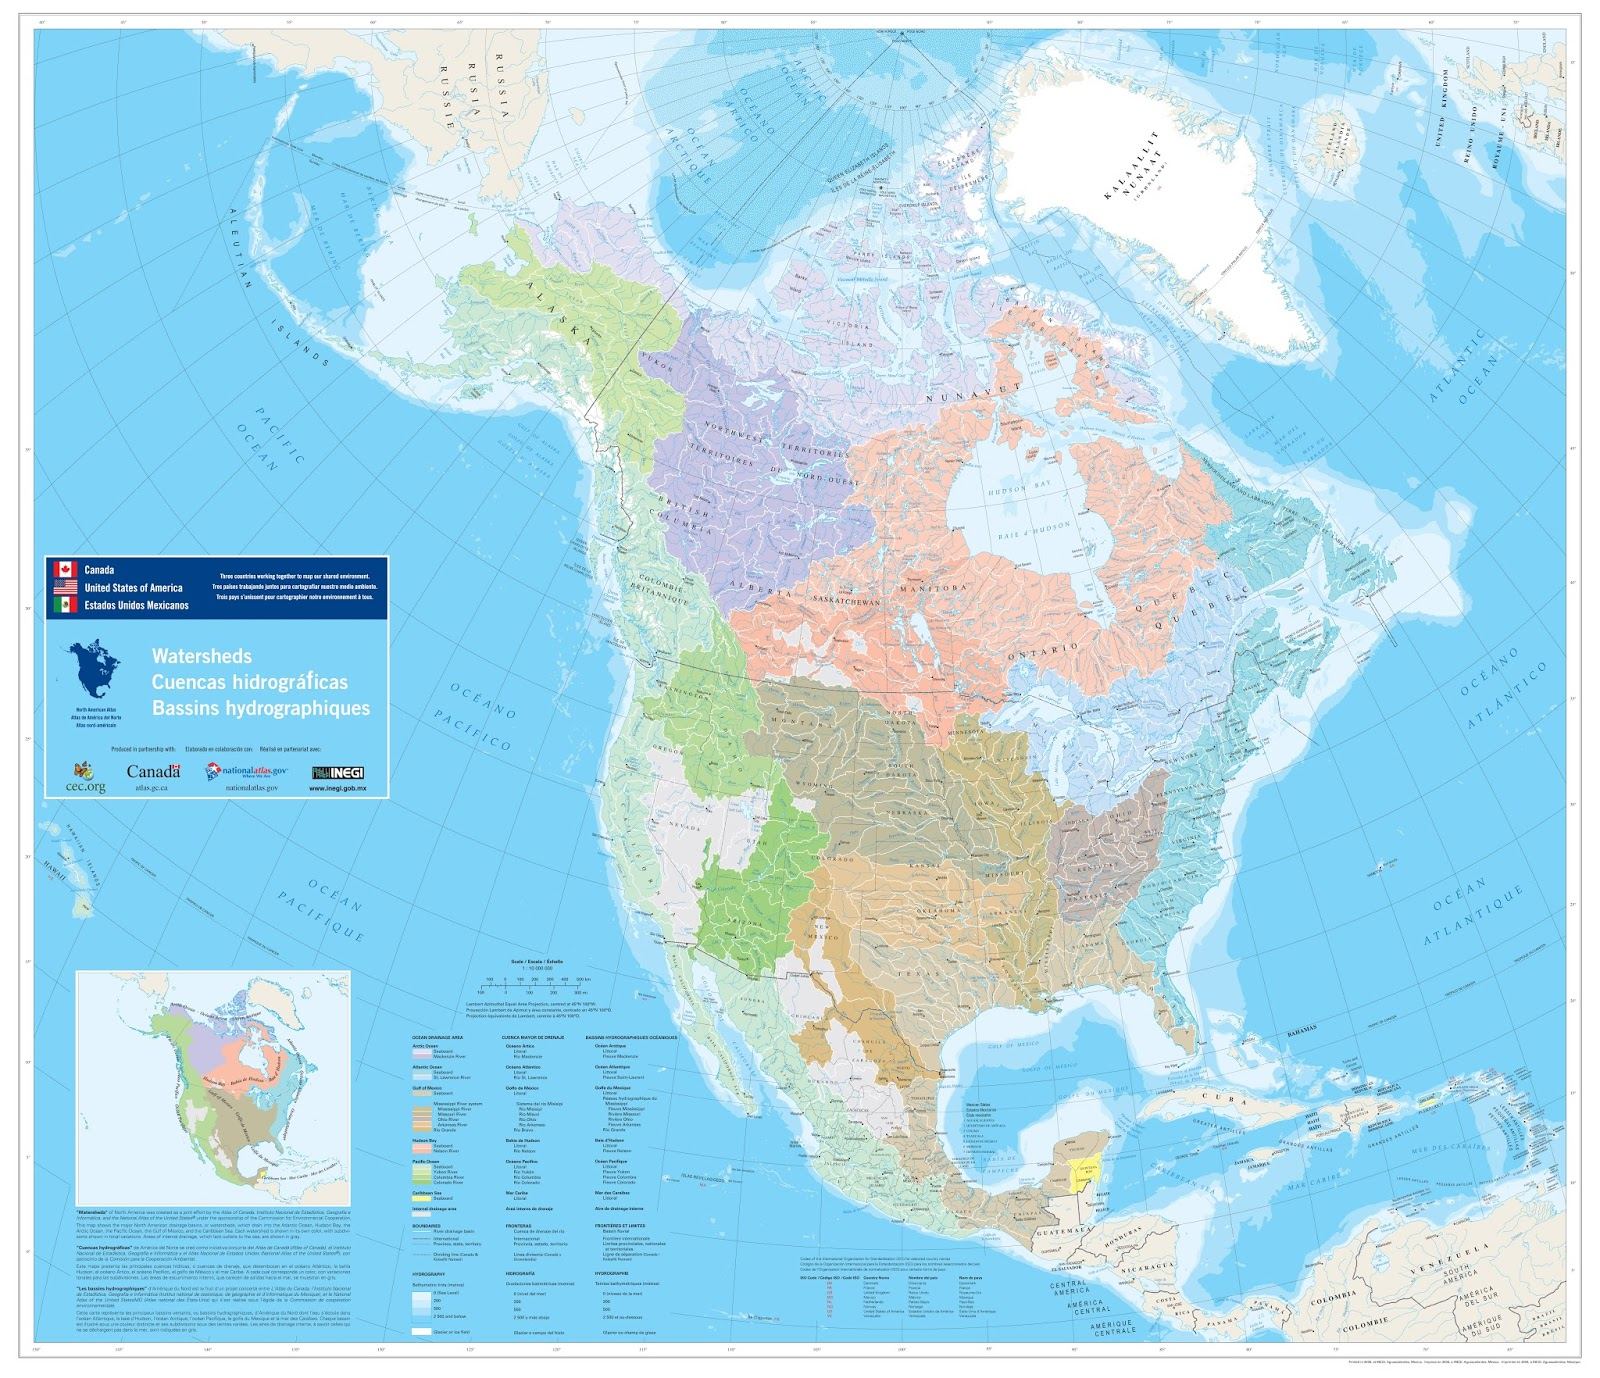 North American Watersheds